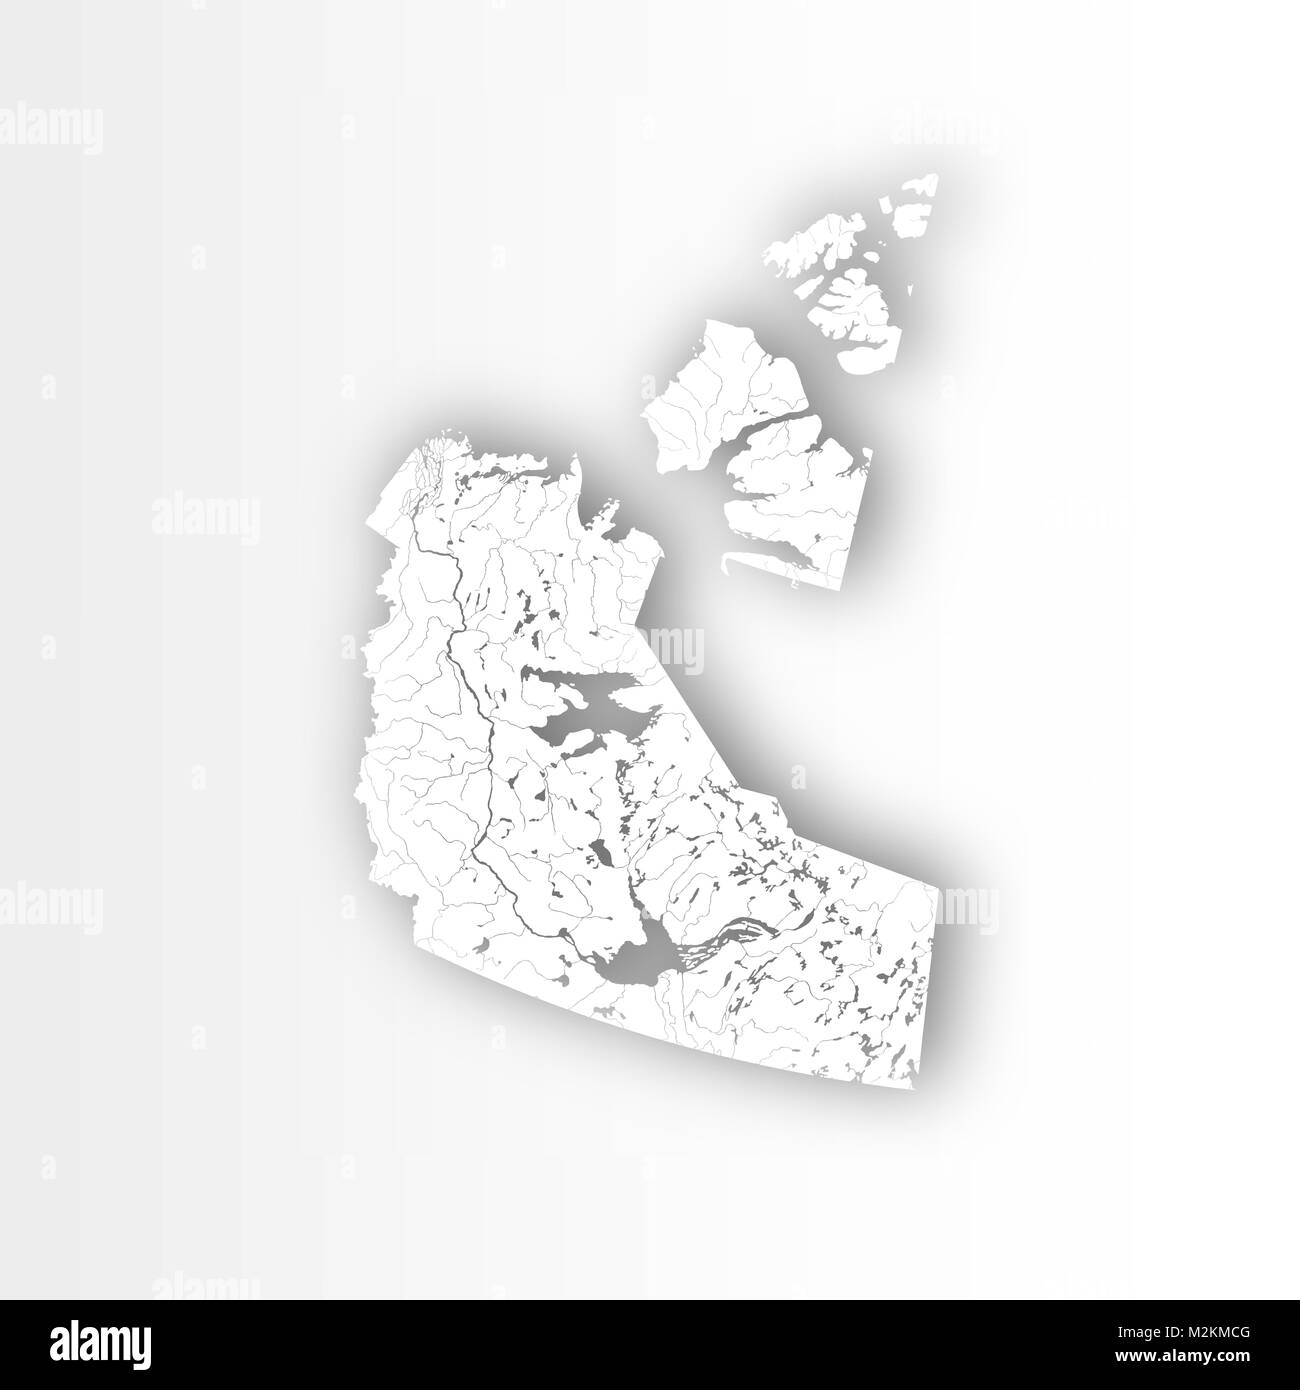 provinces and territories of canada map of northwest territories with paper cut effect rivers and lakes are shown please look at my other images o